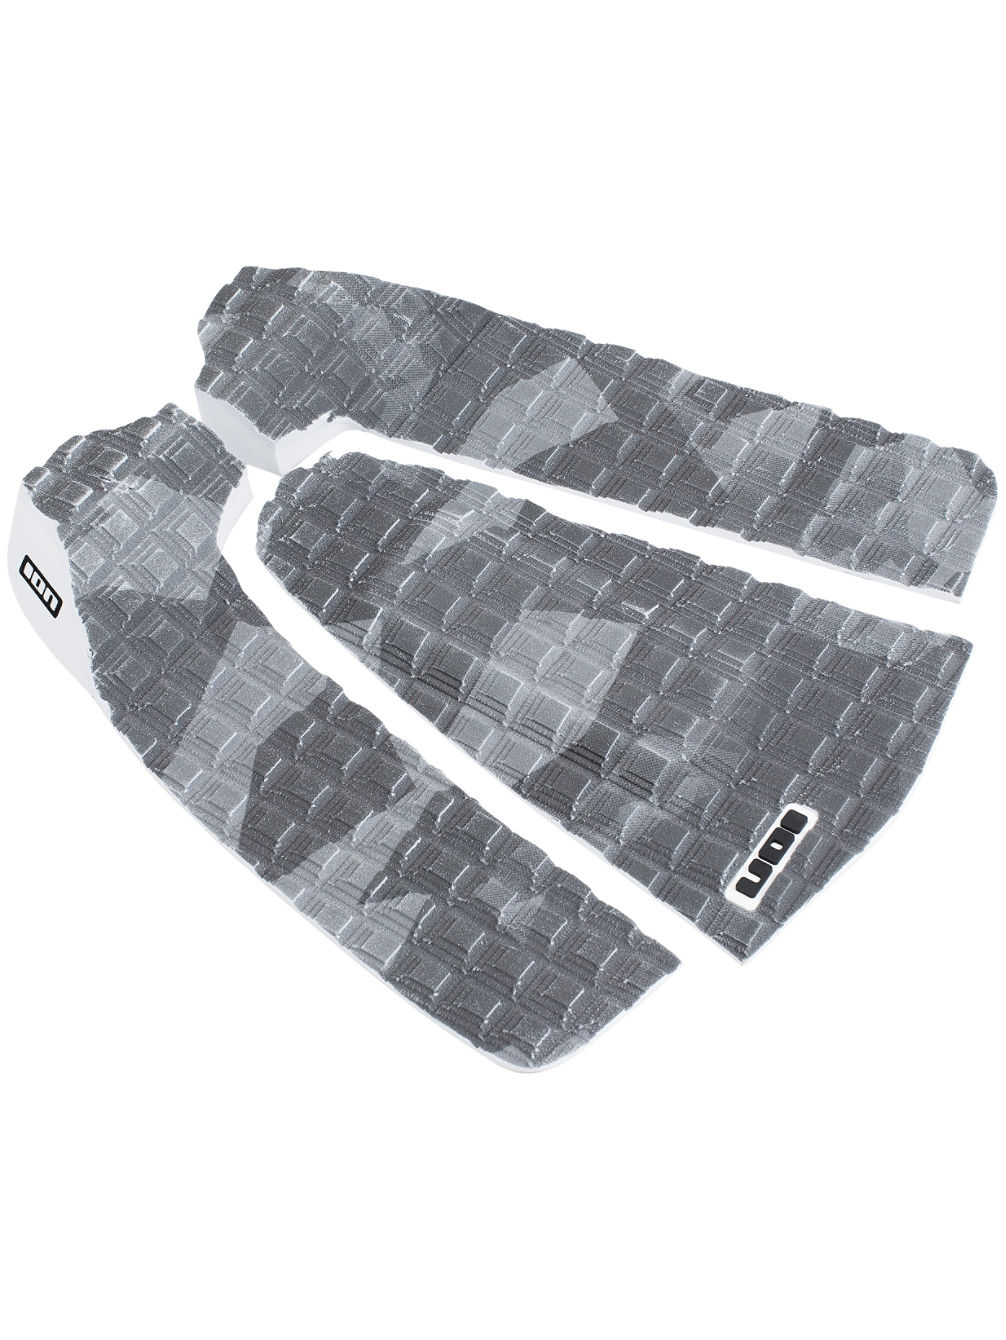 Camouflage (3Pcs) Traction Pad